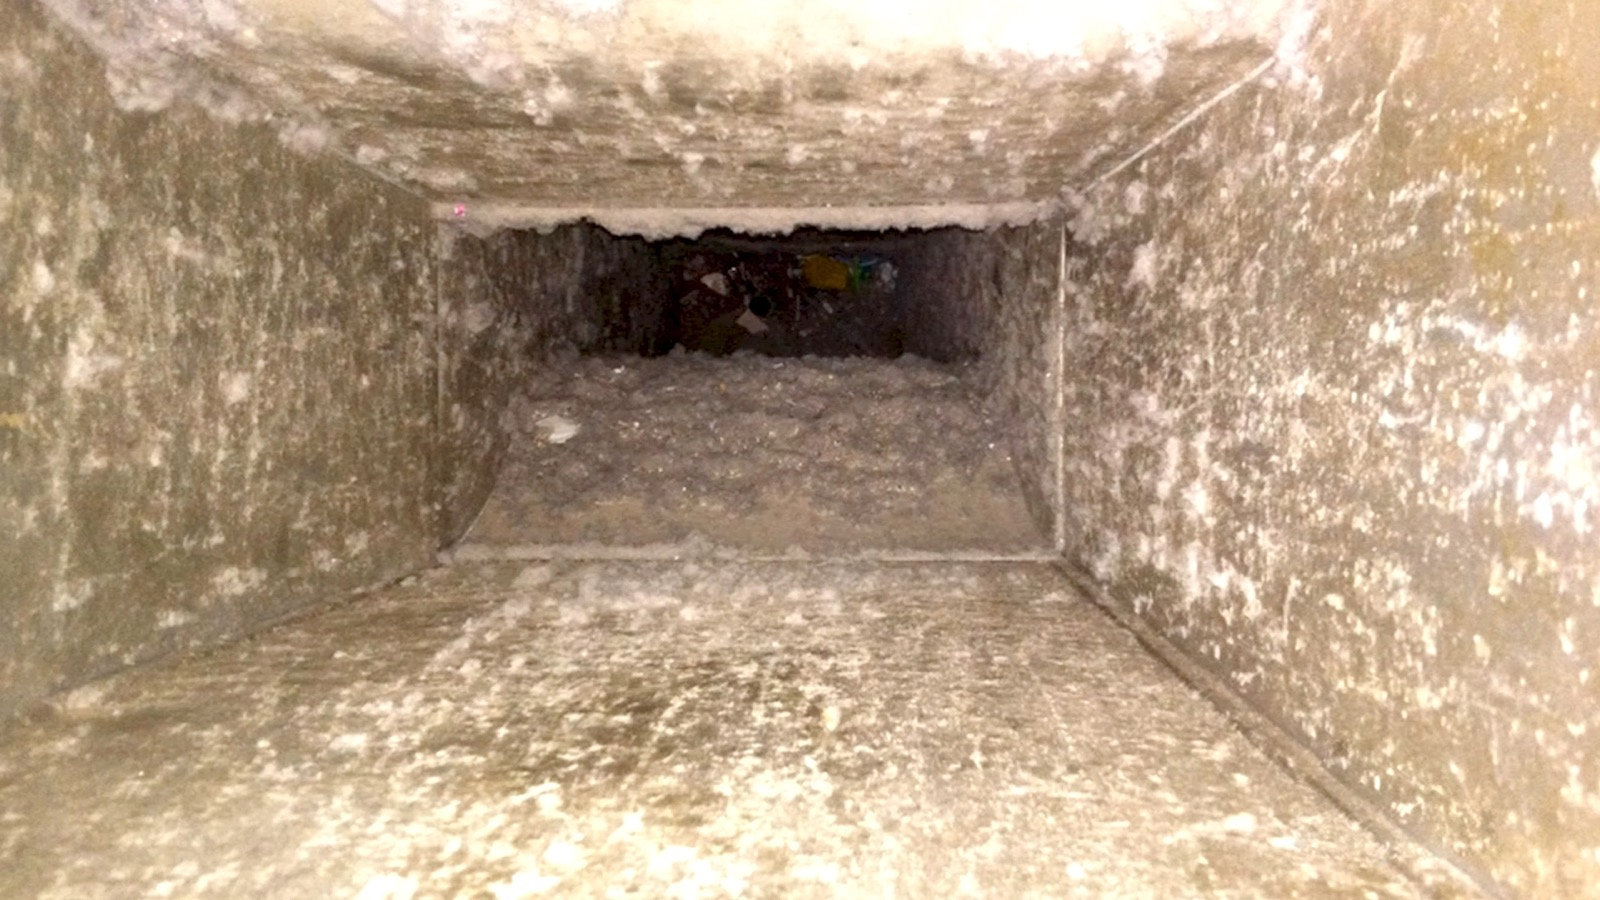 Dirty air ducts need to be cleaned.